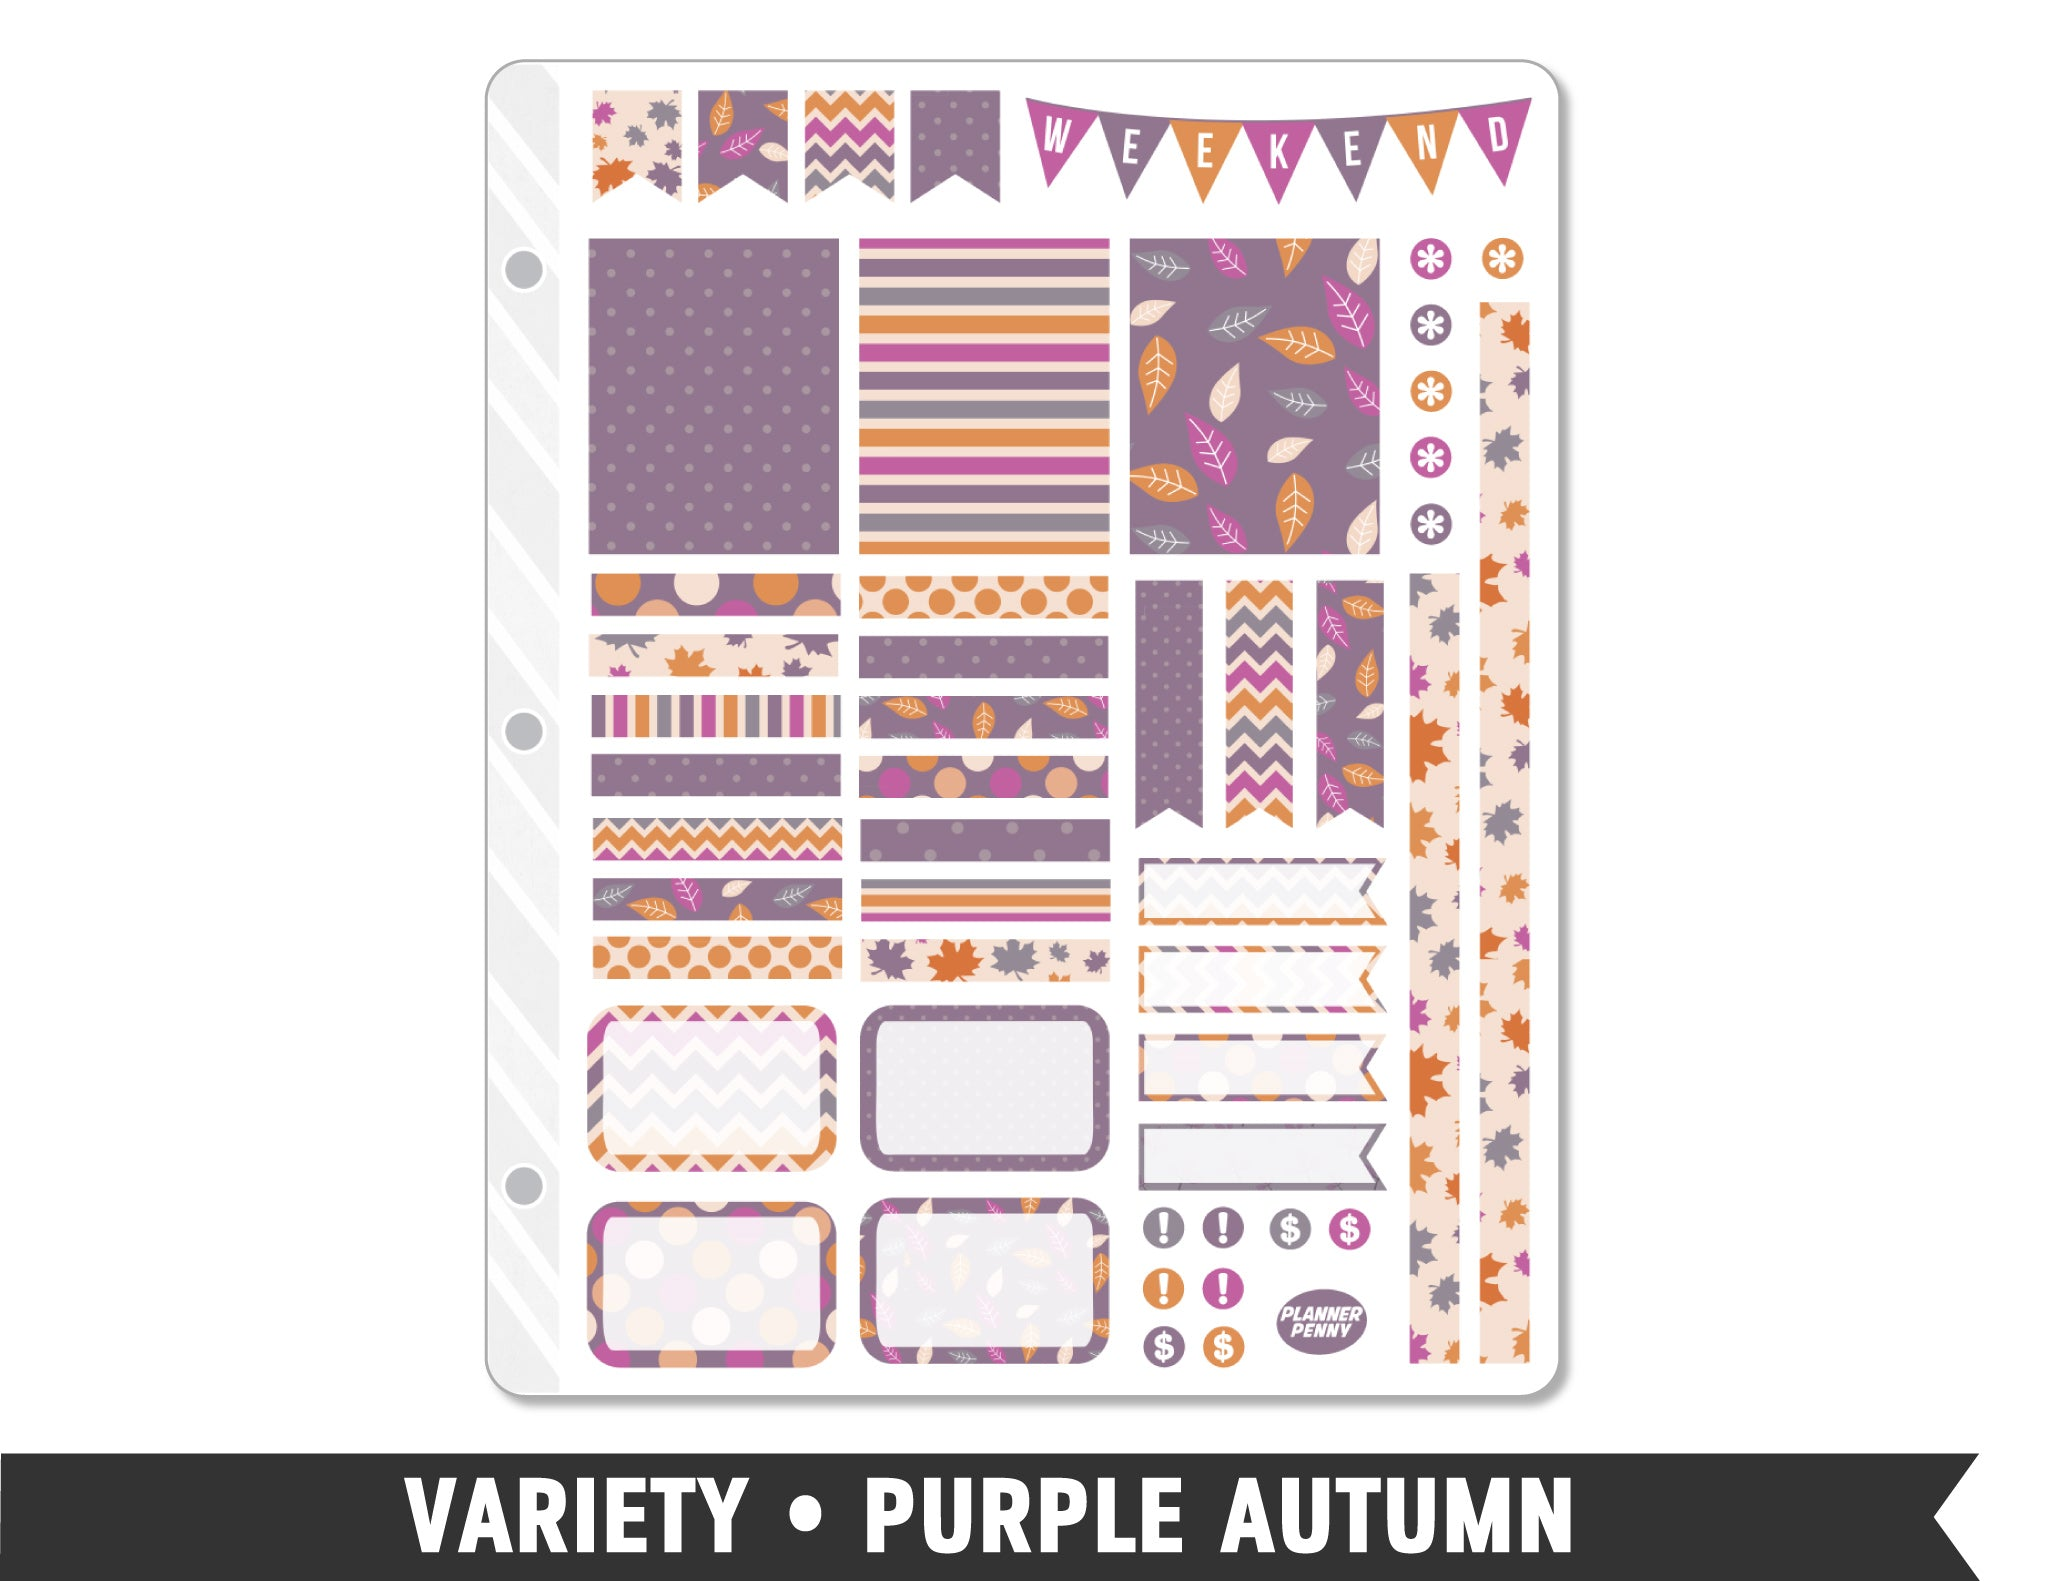 Variety • Purple Autumn Weekly Spread Planner Stickers